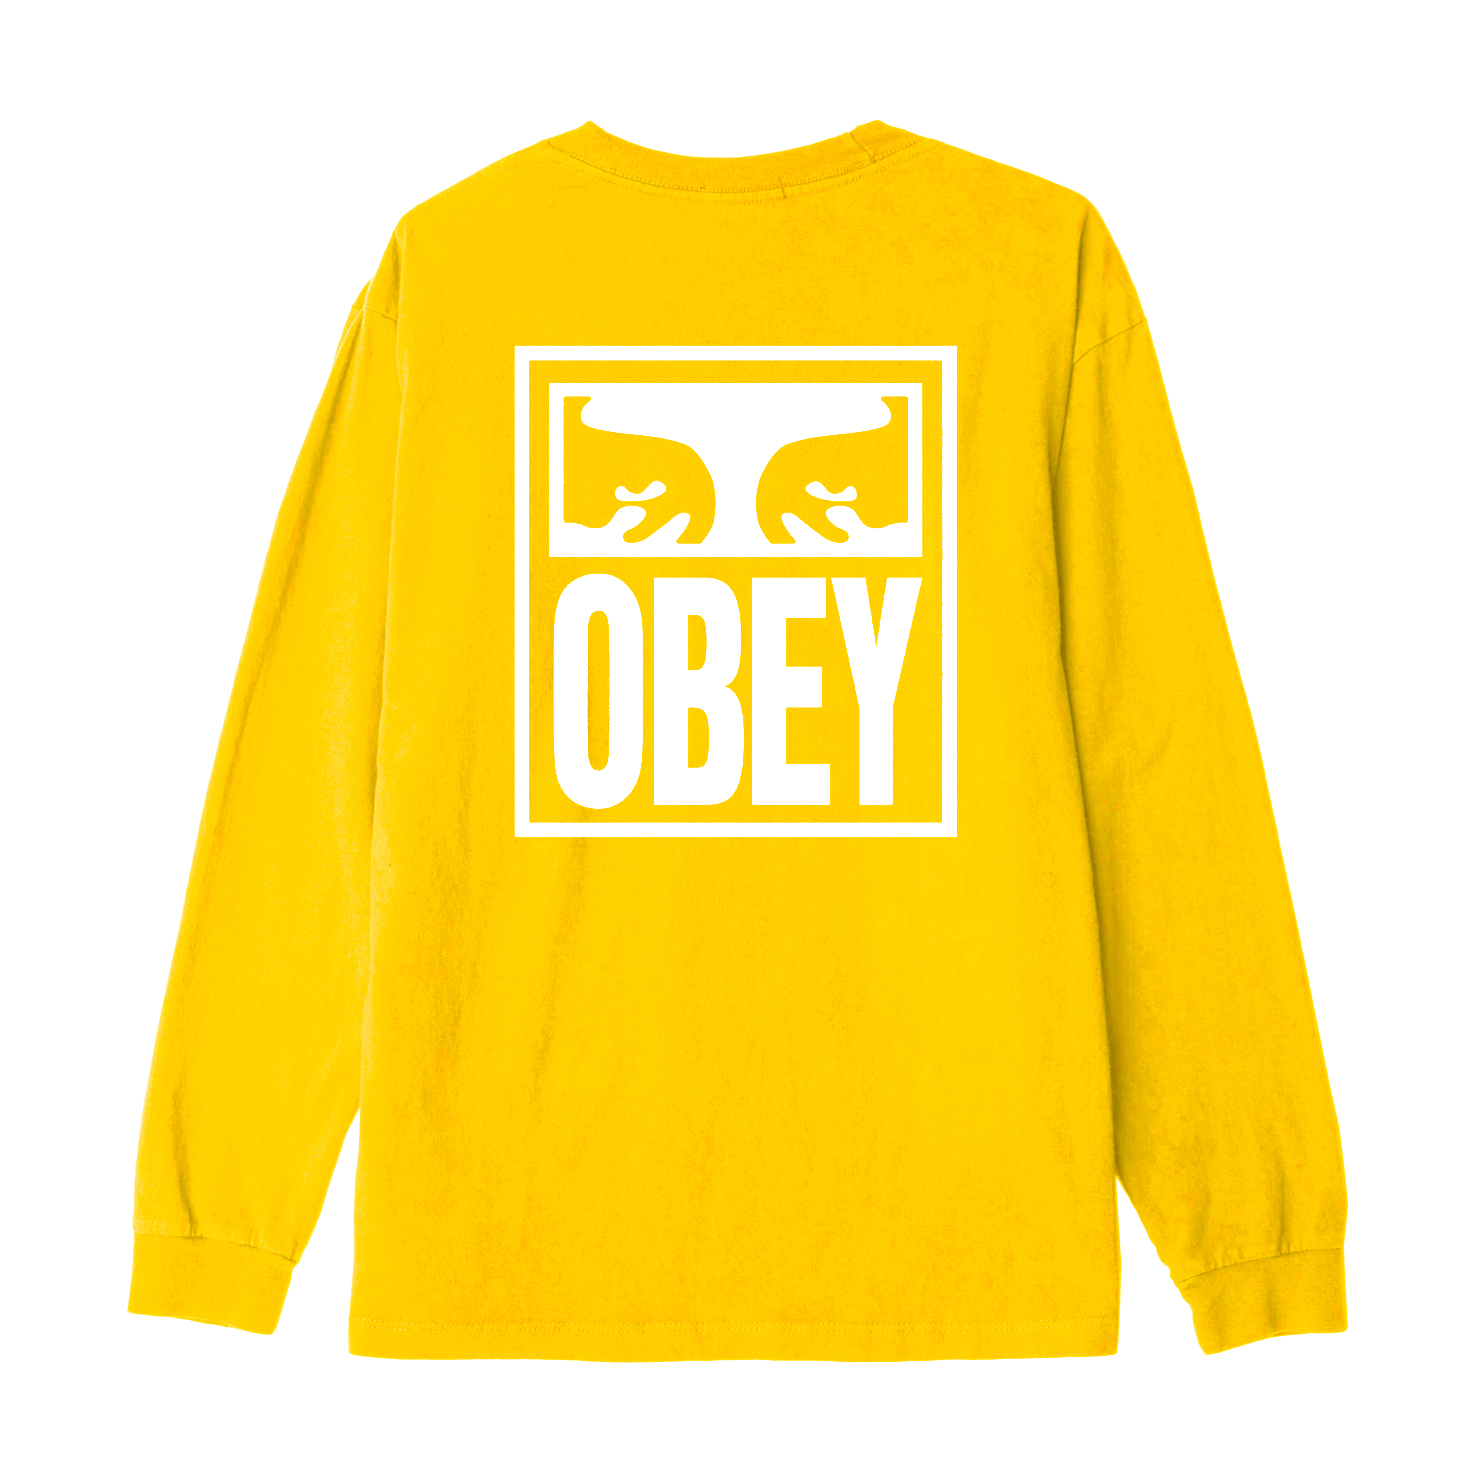 obey_yellow.jpg